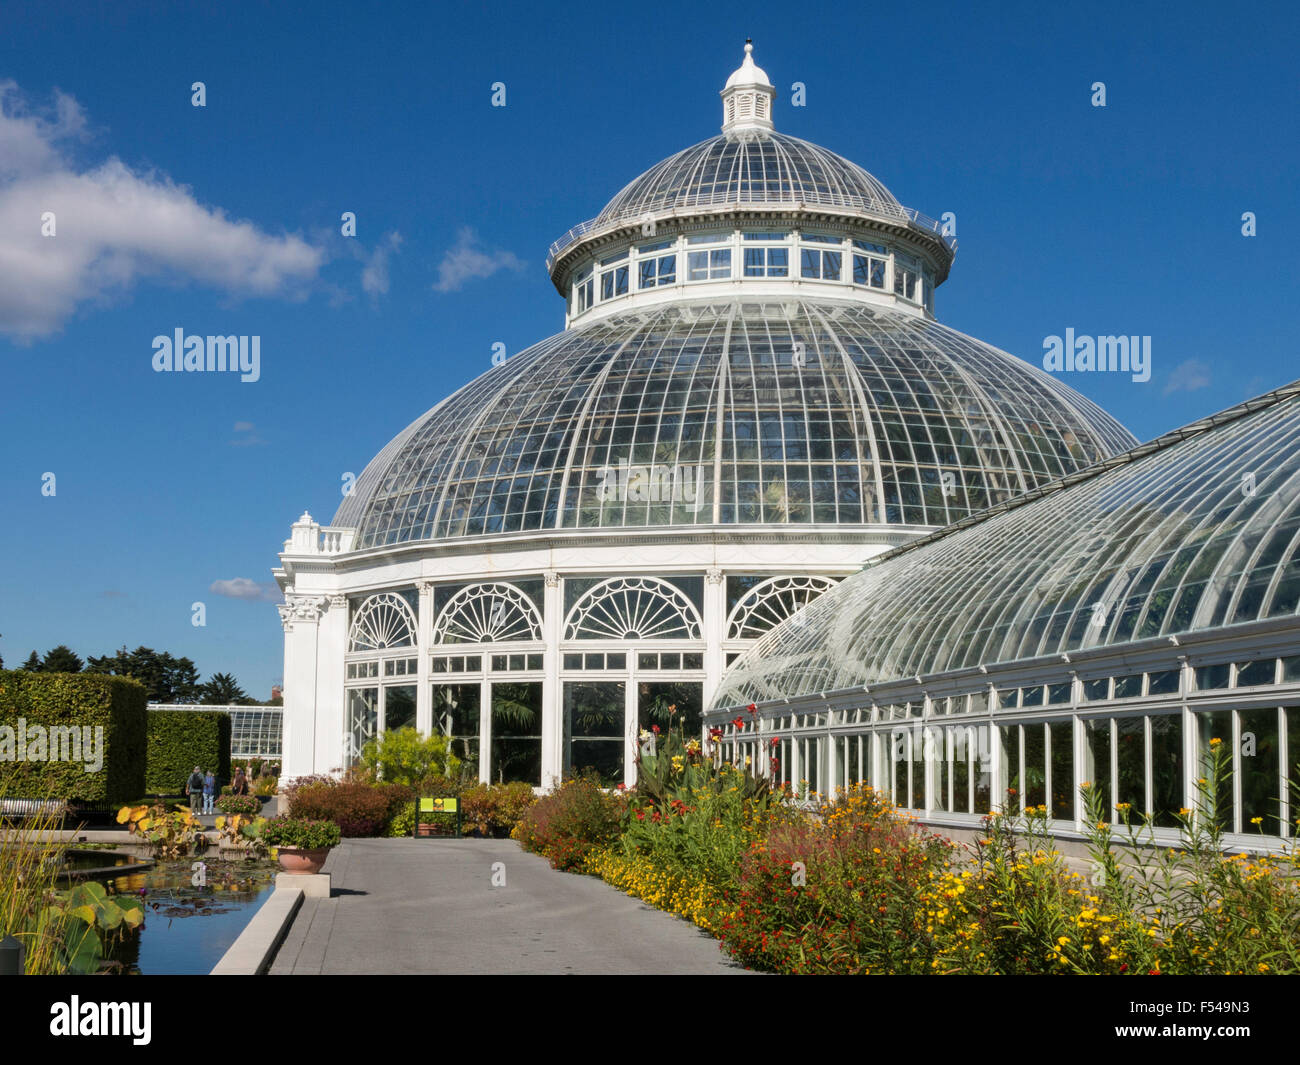 Haupt Conservatory In The New York Botanical Garden The Bronx Ny Stock Photo Royalty Free